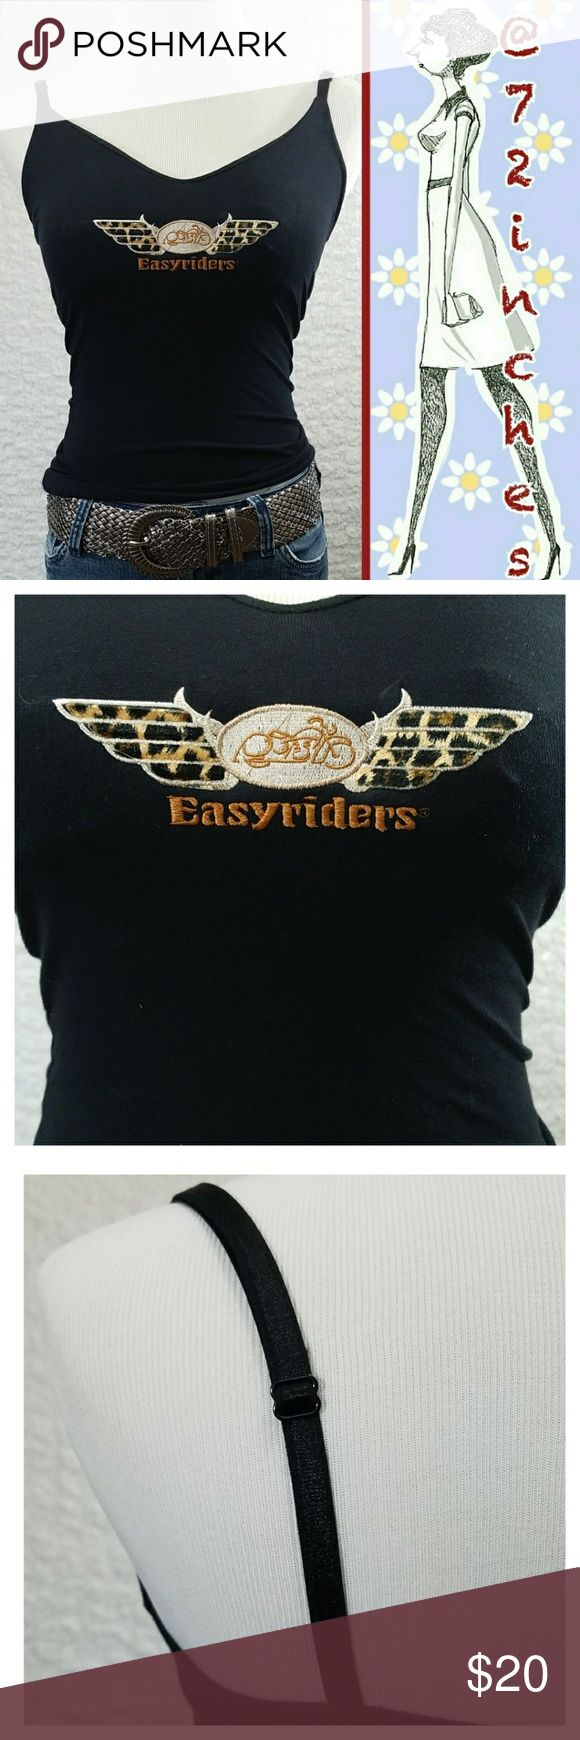 """Easyriders® Rodeo Tour Embroidered Camisole V-neck camisole with embroidered Easyriders® logo, built in shelf bra and adjustable straps.  100% cotton, machine W&D  This is sized as a women's medium but it is not. Extra small is more my best guess, please go by the measurements.  Lying flat: Bust 12.5"""" Length 21"""" Southern Steel Tops Camisoles"""